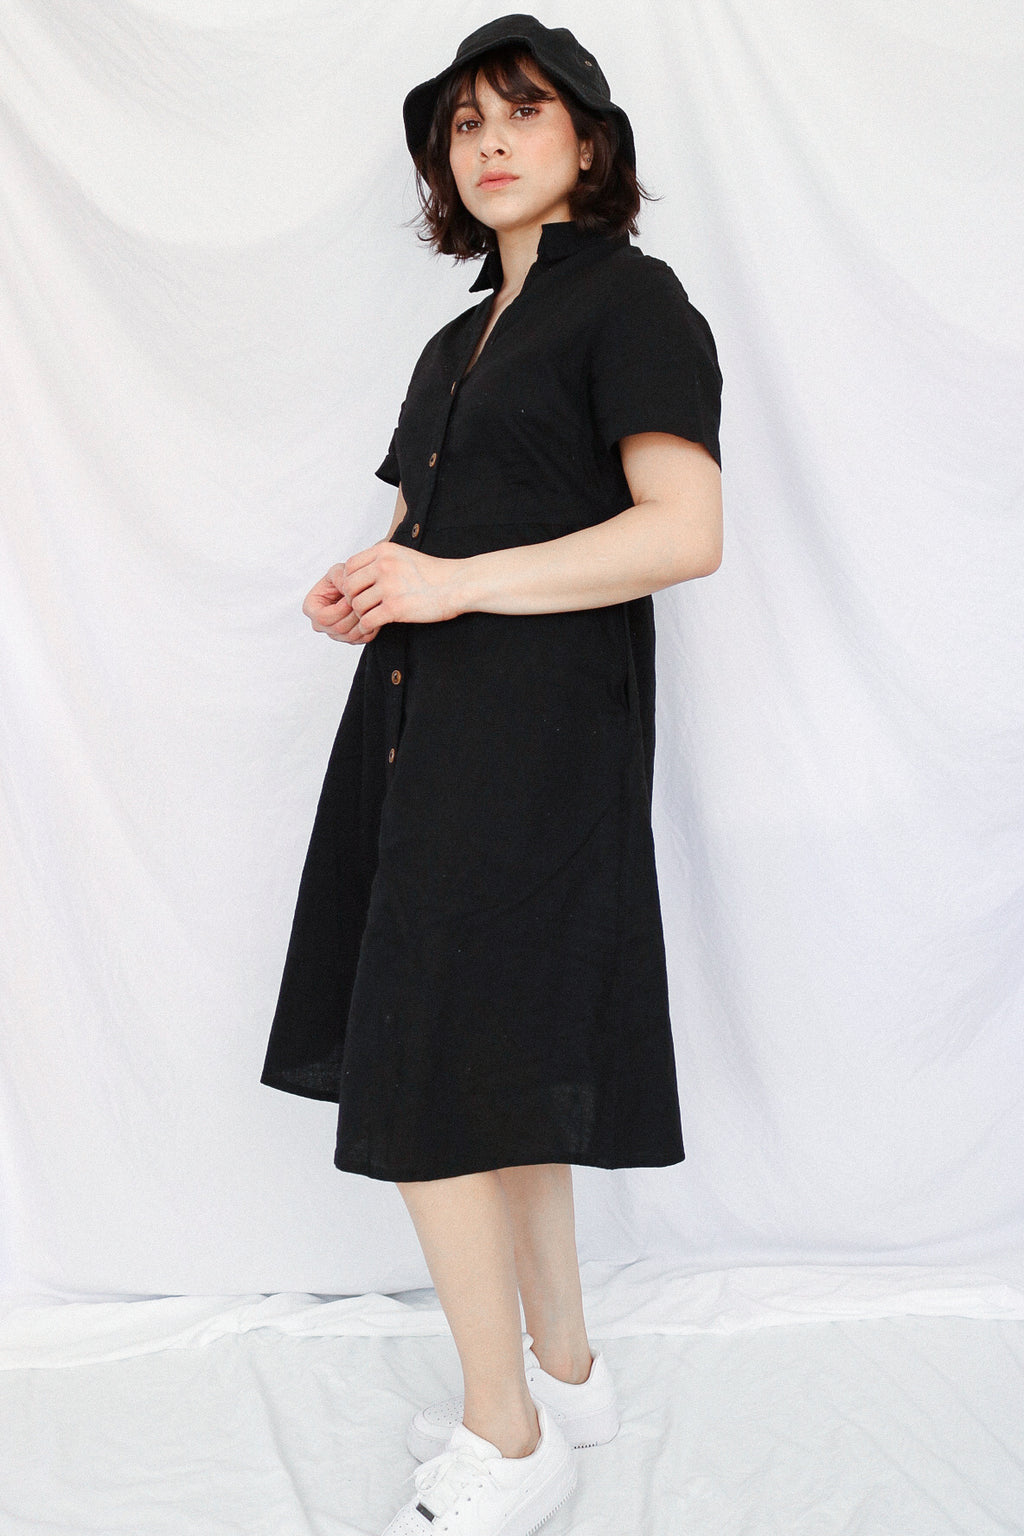 Sunday Shirt Dress - Black